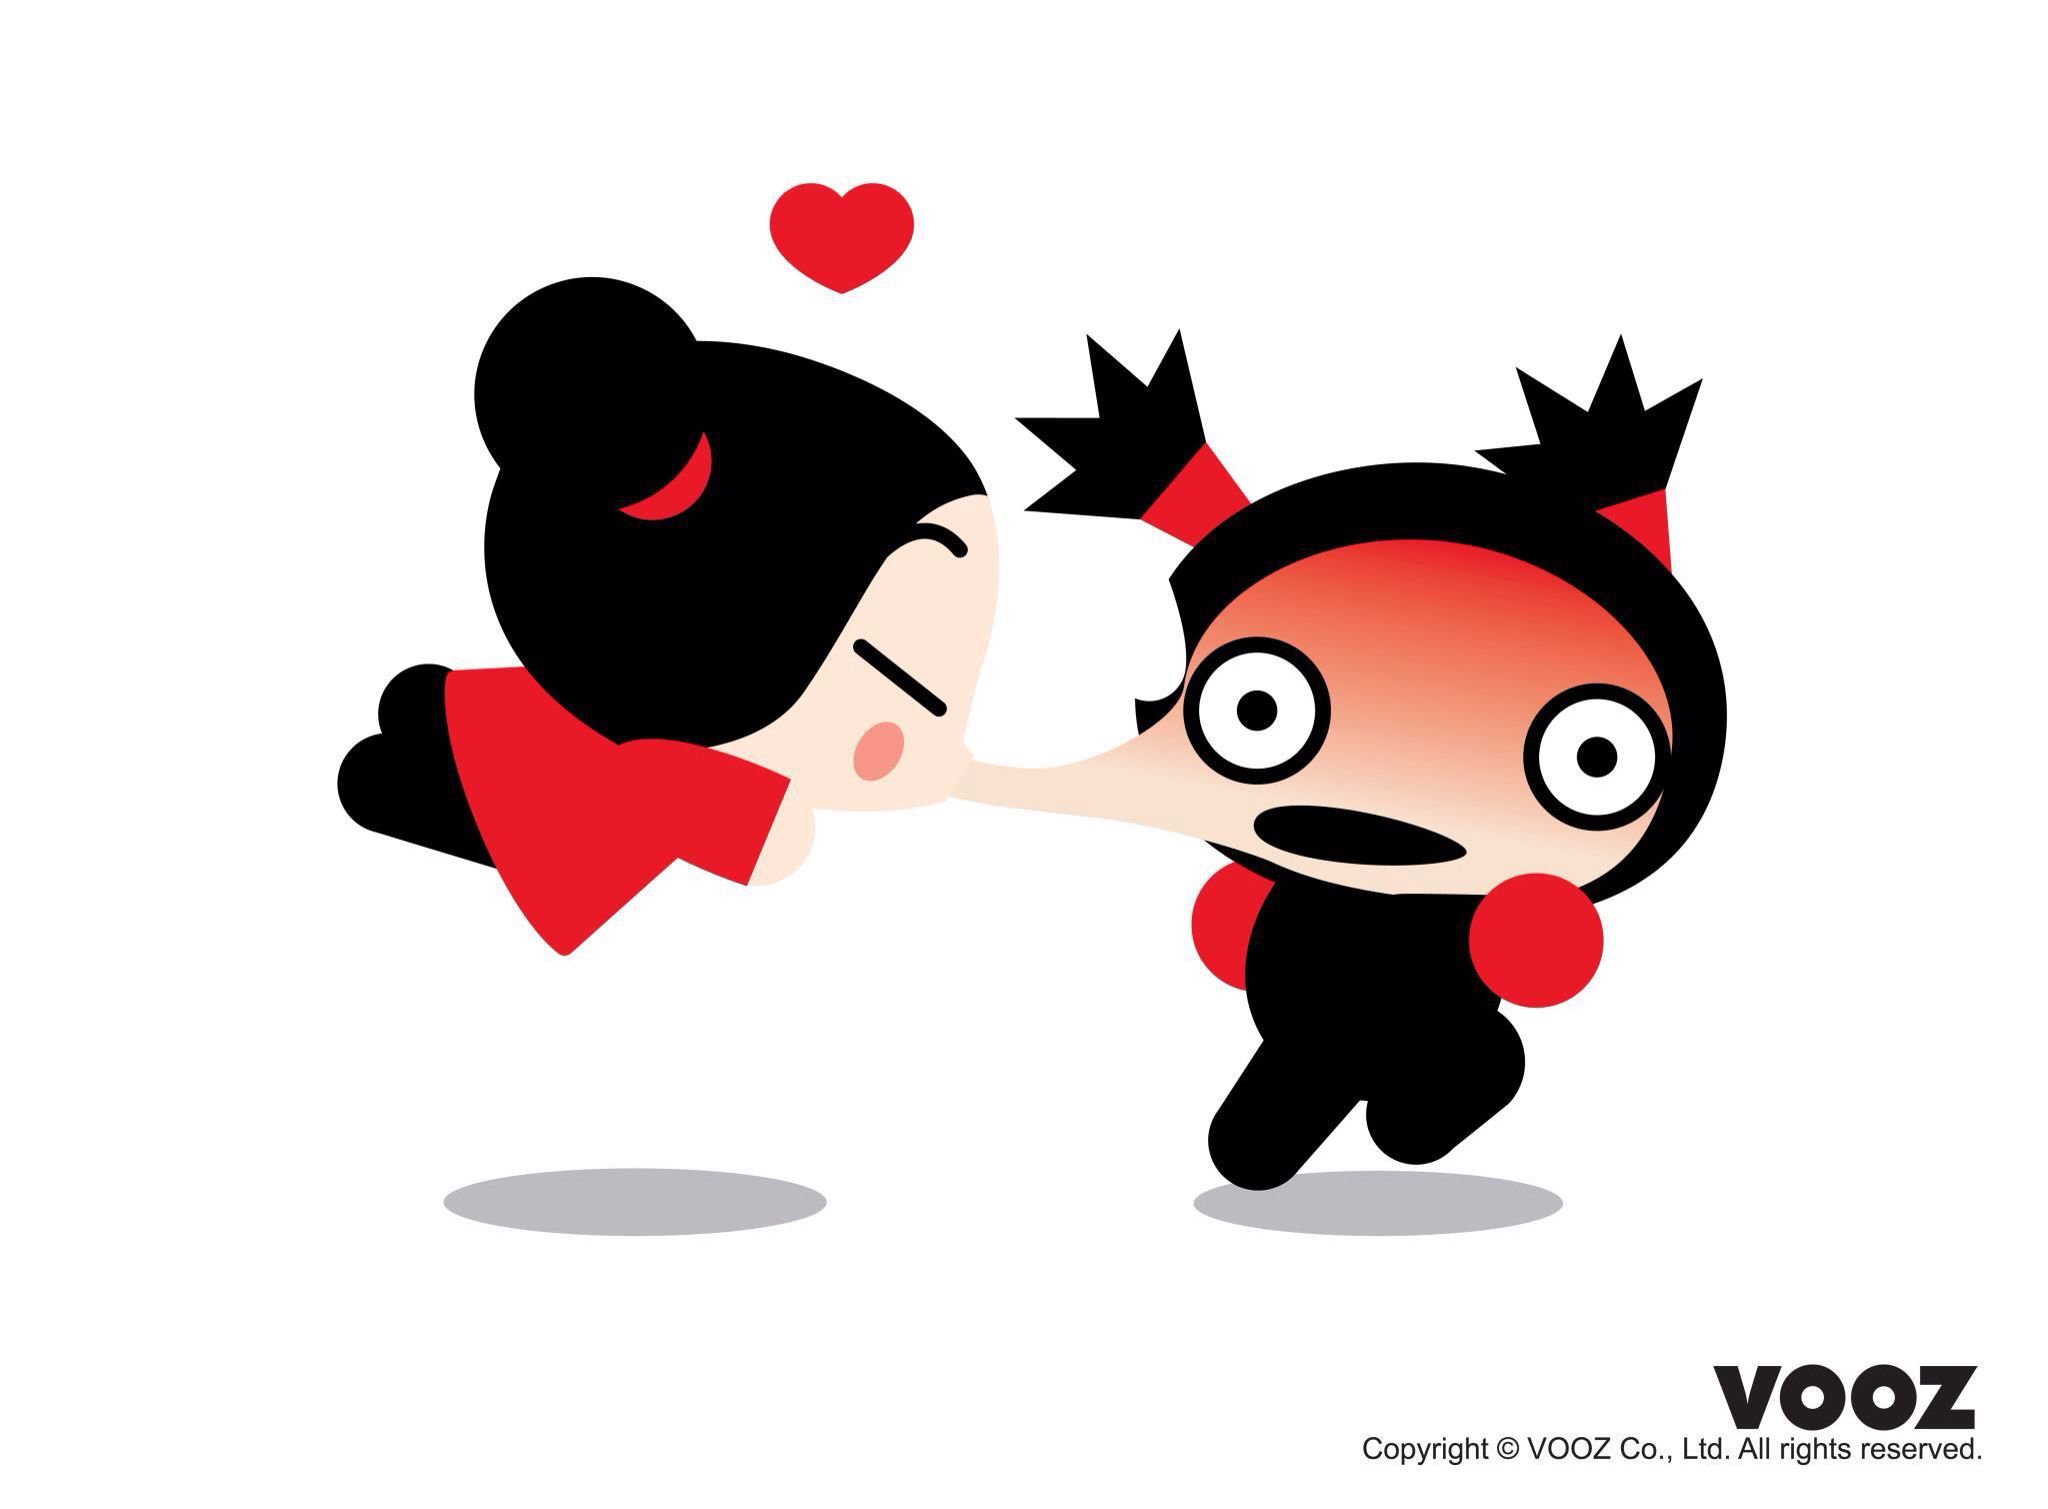 Cute Love Cartoon Couples Wallpapers Vooz Pucca ️️pucca ️ Pucca Pukka Funny Love